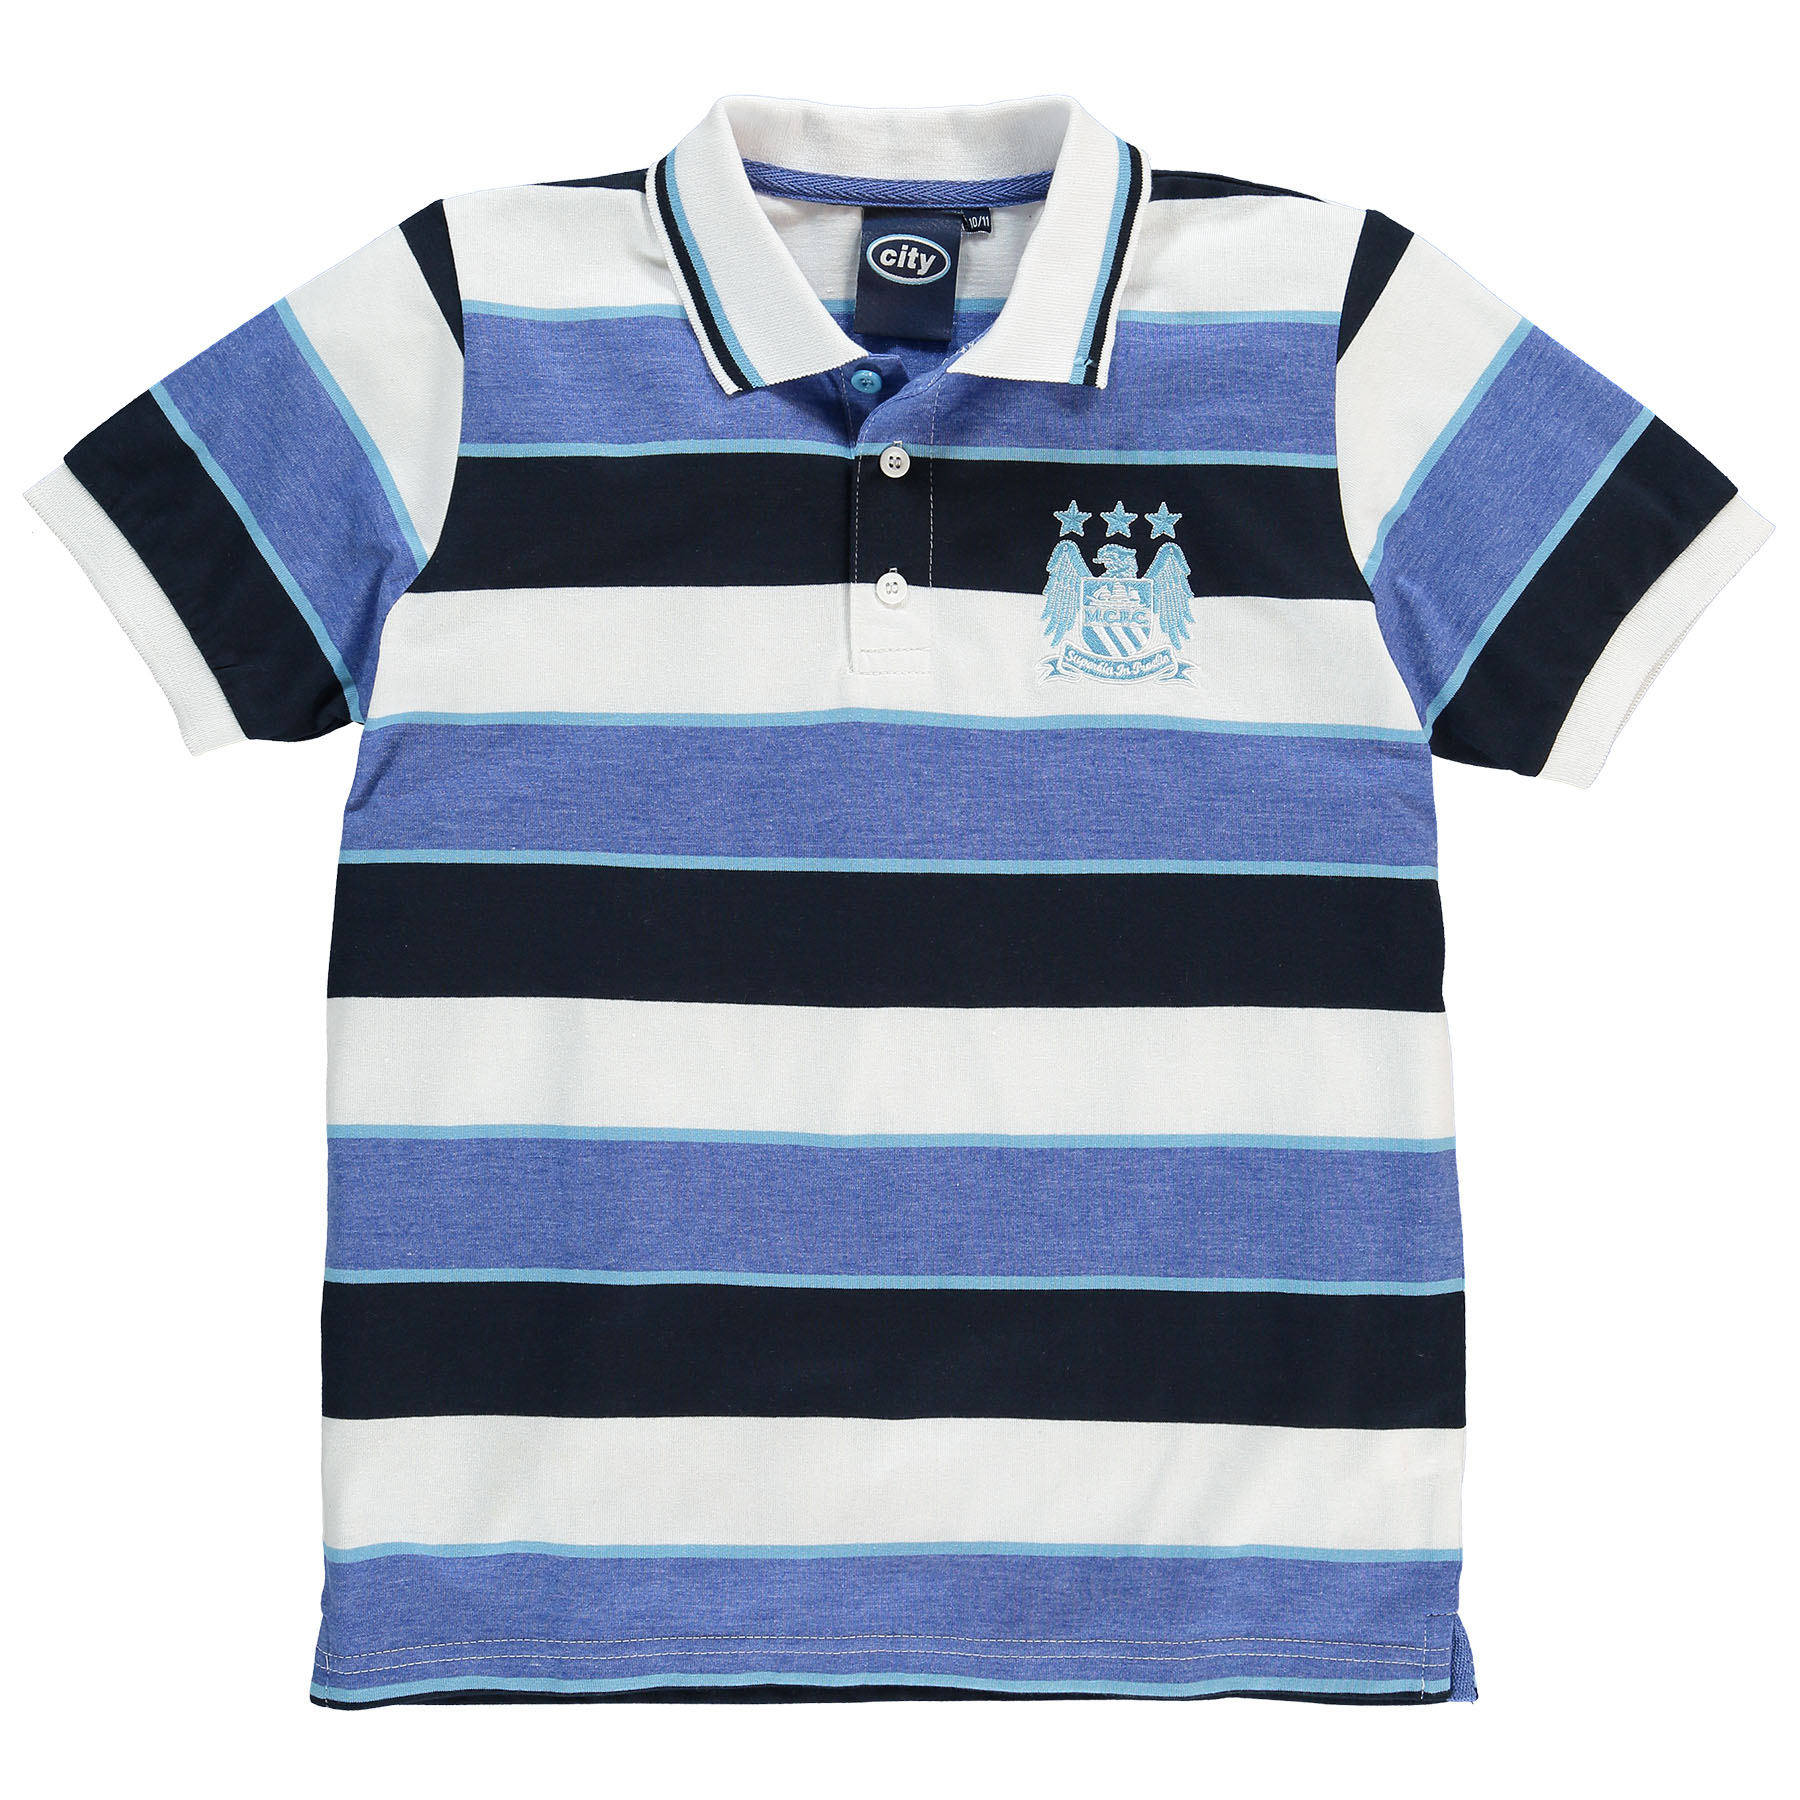 Manchester City Classic Polo Shirt- White/Multi - Infant Boys